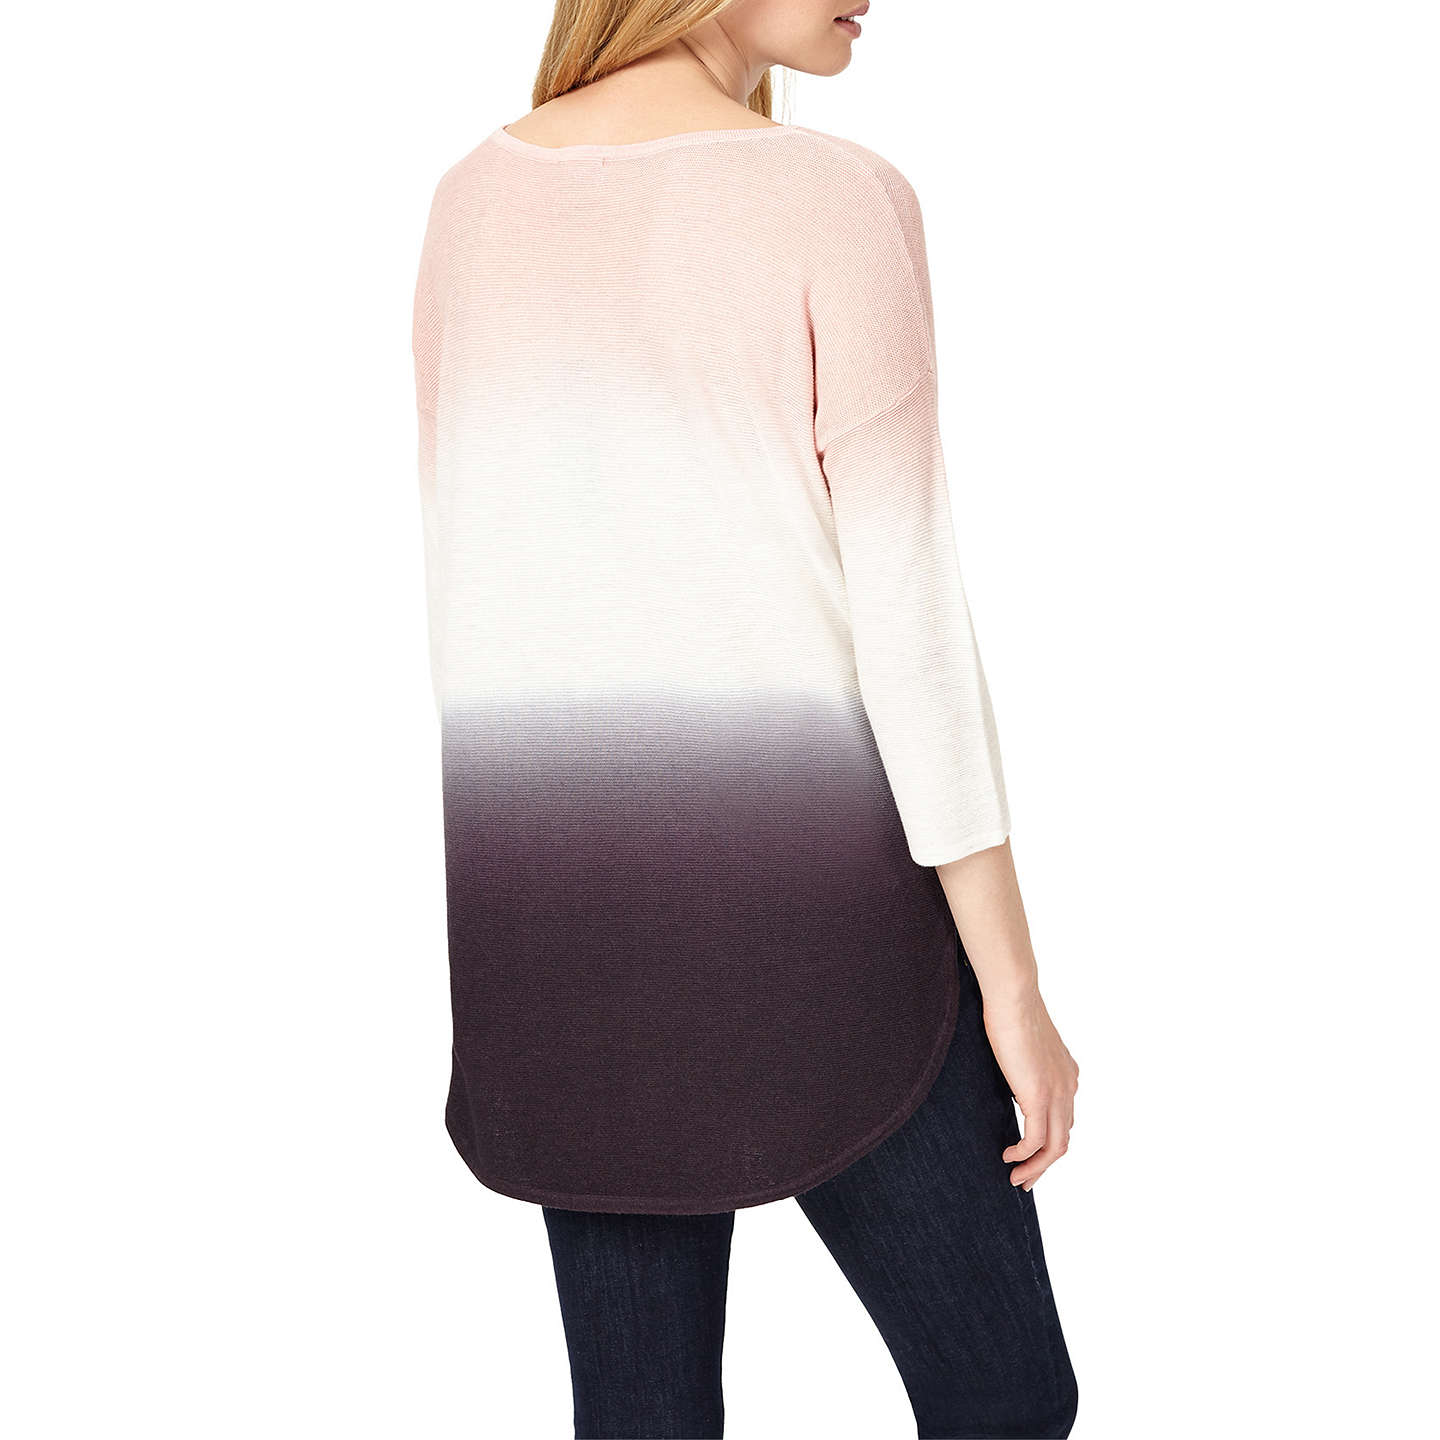 BuyPhase Eight Lynda Dip Dye Jumper, Soft Pink, XS Online at johnlewis.com